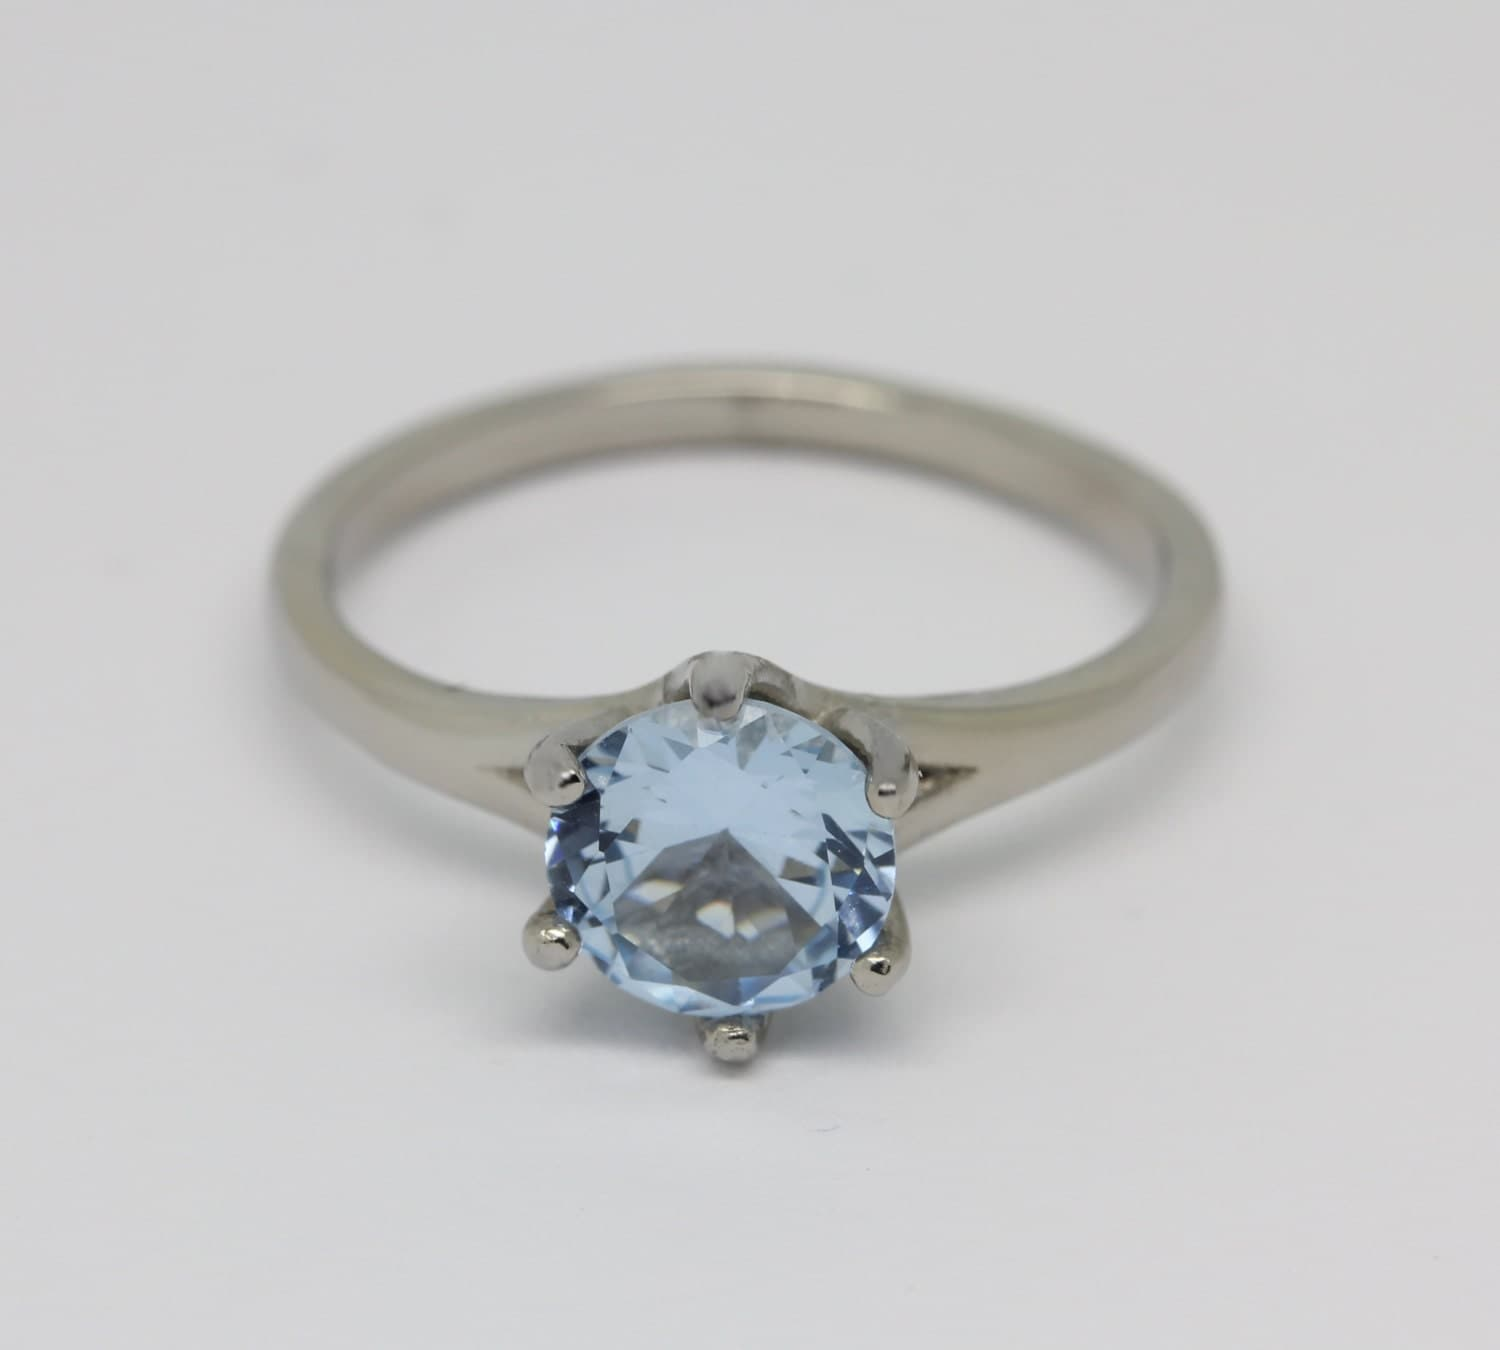 Natural 1.5ct aquamarine solitaire ring in Titanium or White Gold  engagement ring  wedding ring  handmade ring